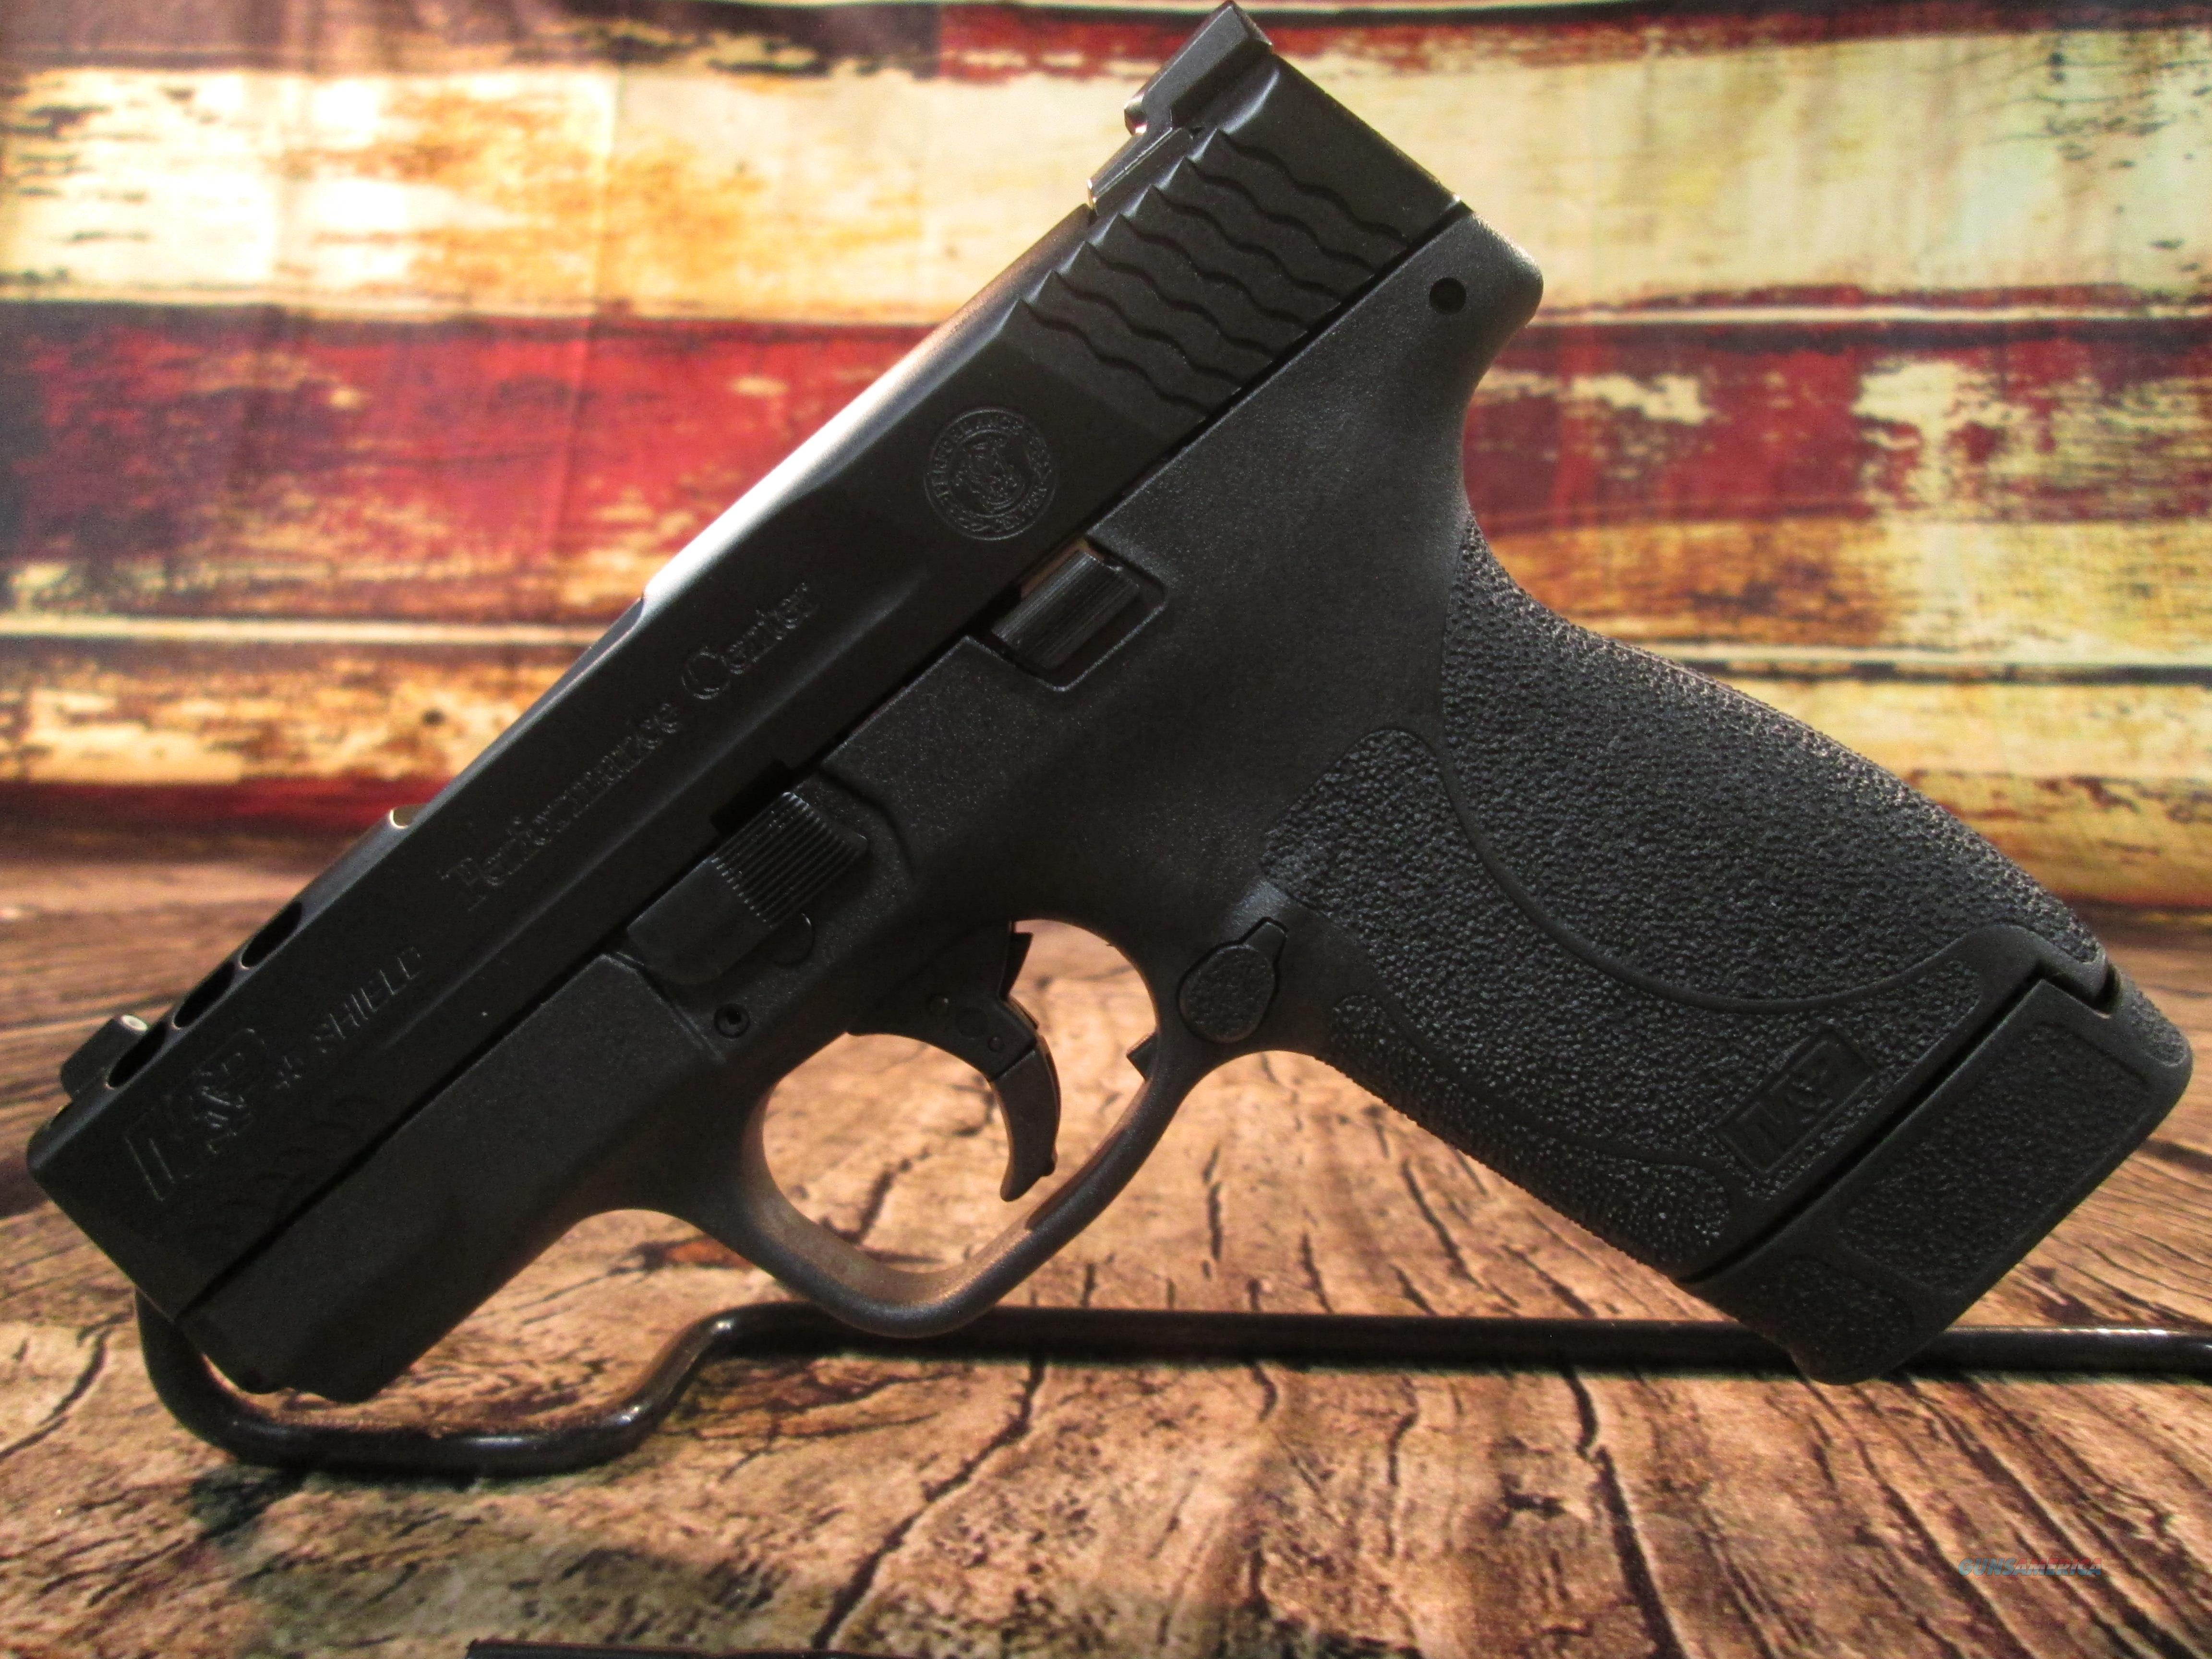 SMITH & WESSON  PERFORMANCE CENTER M&P SHIELD 45 ACP (11727)  Guns > Pistols > Smith & Wesson Pistols - Autos > Shield